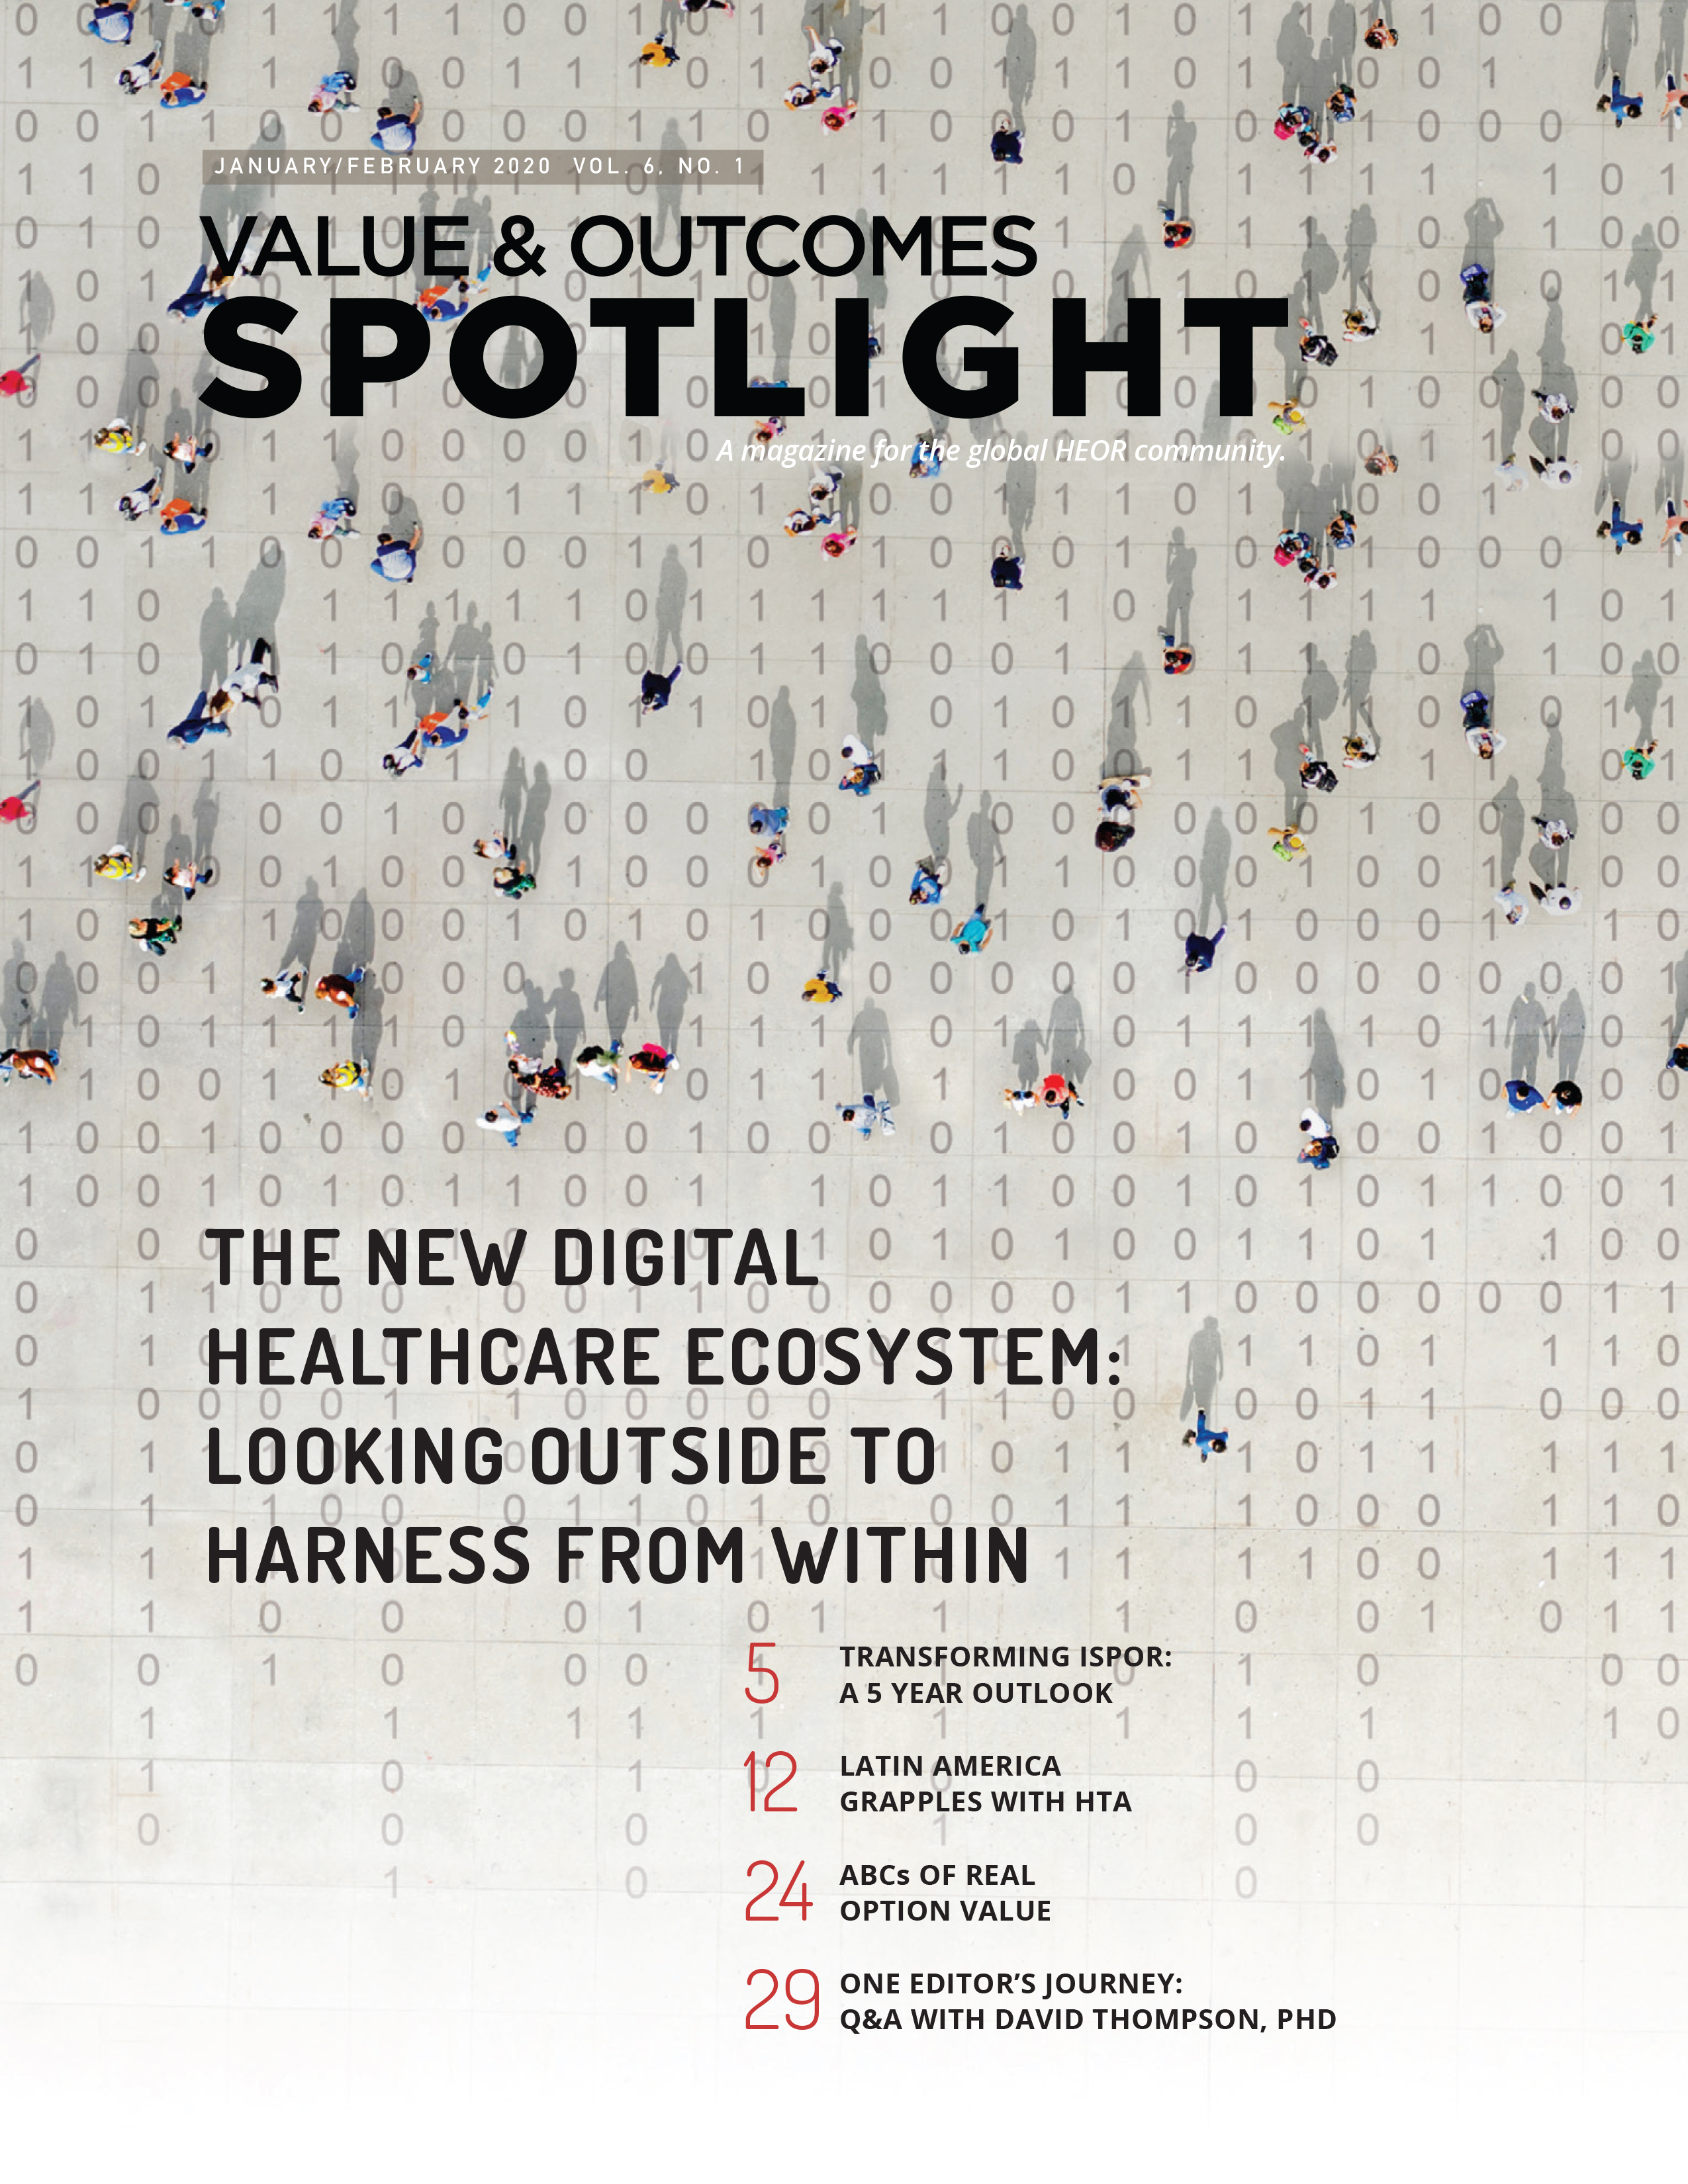 Value and Outcomes Spotlight - The new digital healthcare ecosystem: Looking outside the harness from within